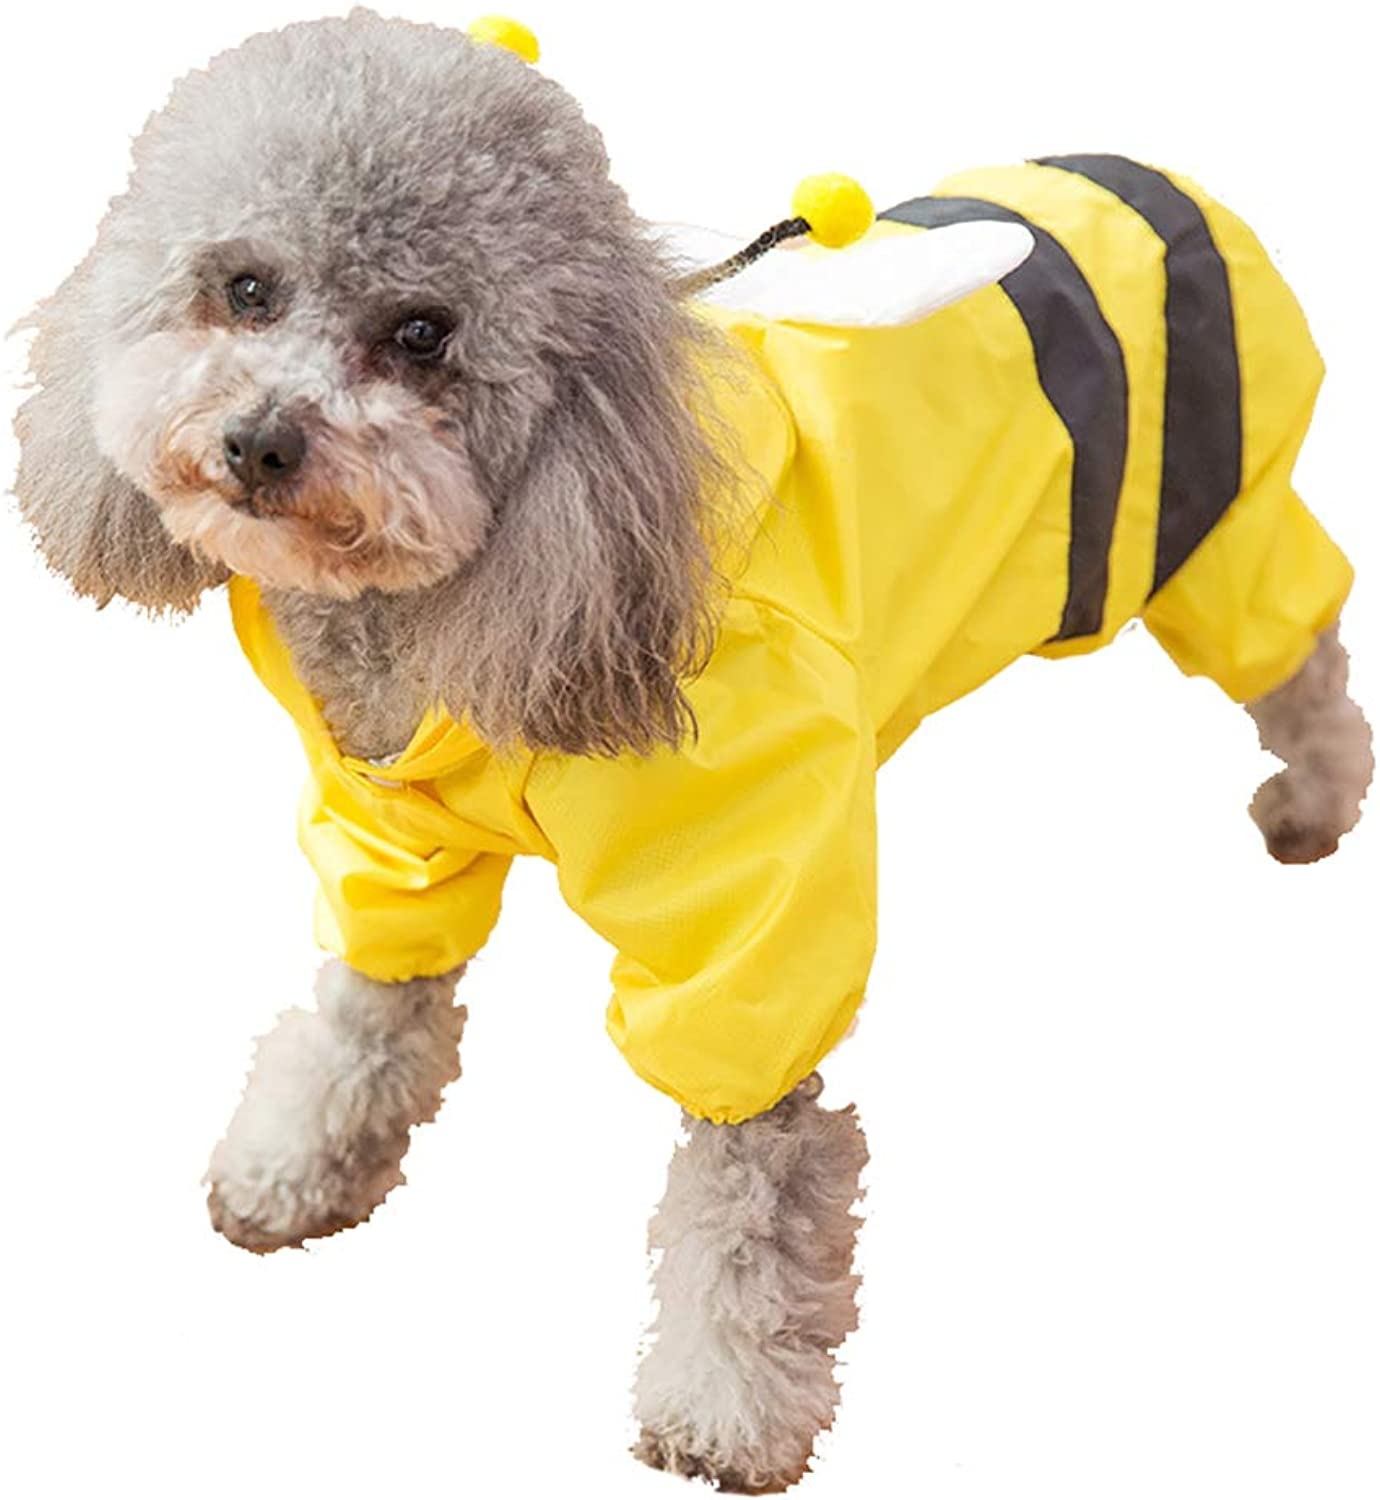 Fashion Pet Dog Raincoat,Dog Rain Jacket with Hood The bee Looks Cute Smart Traction Hole Design Connected to The Traction Belt Waterproof Fabric,XL